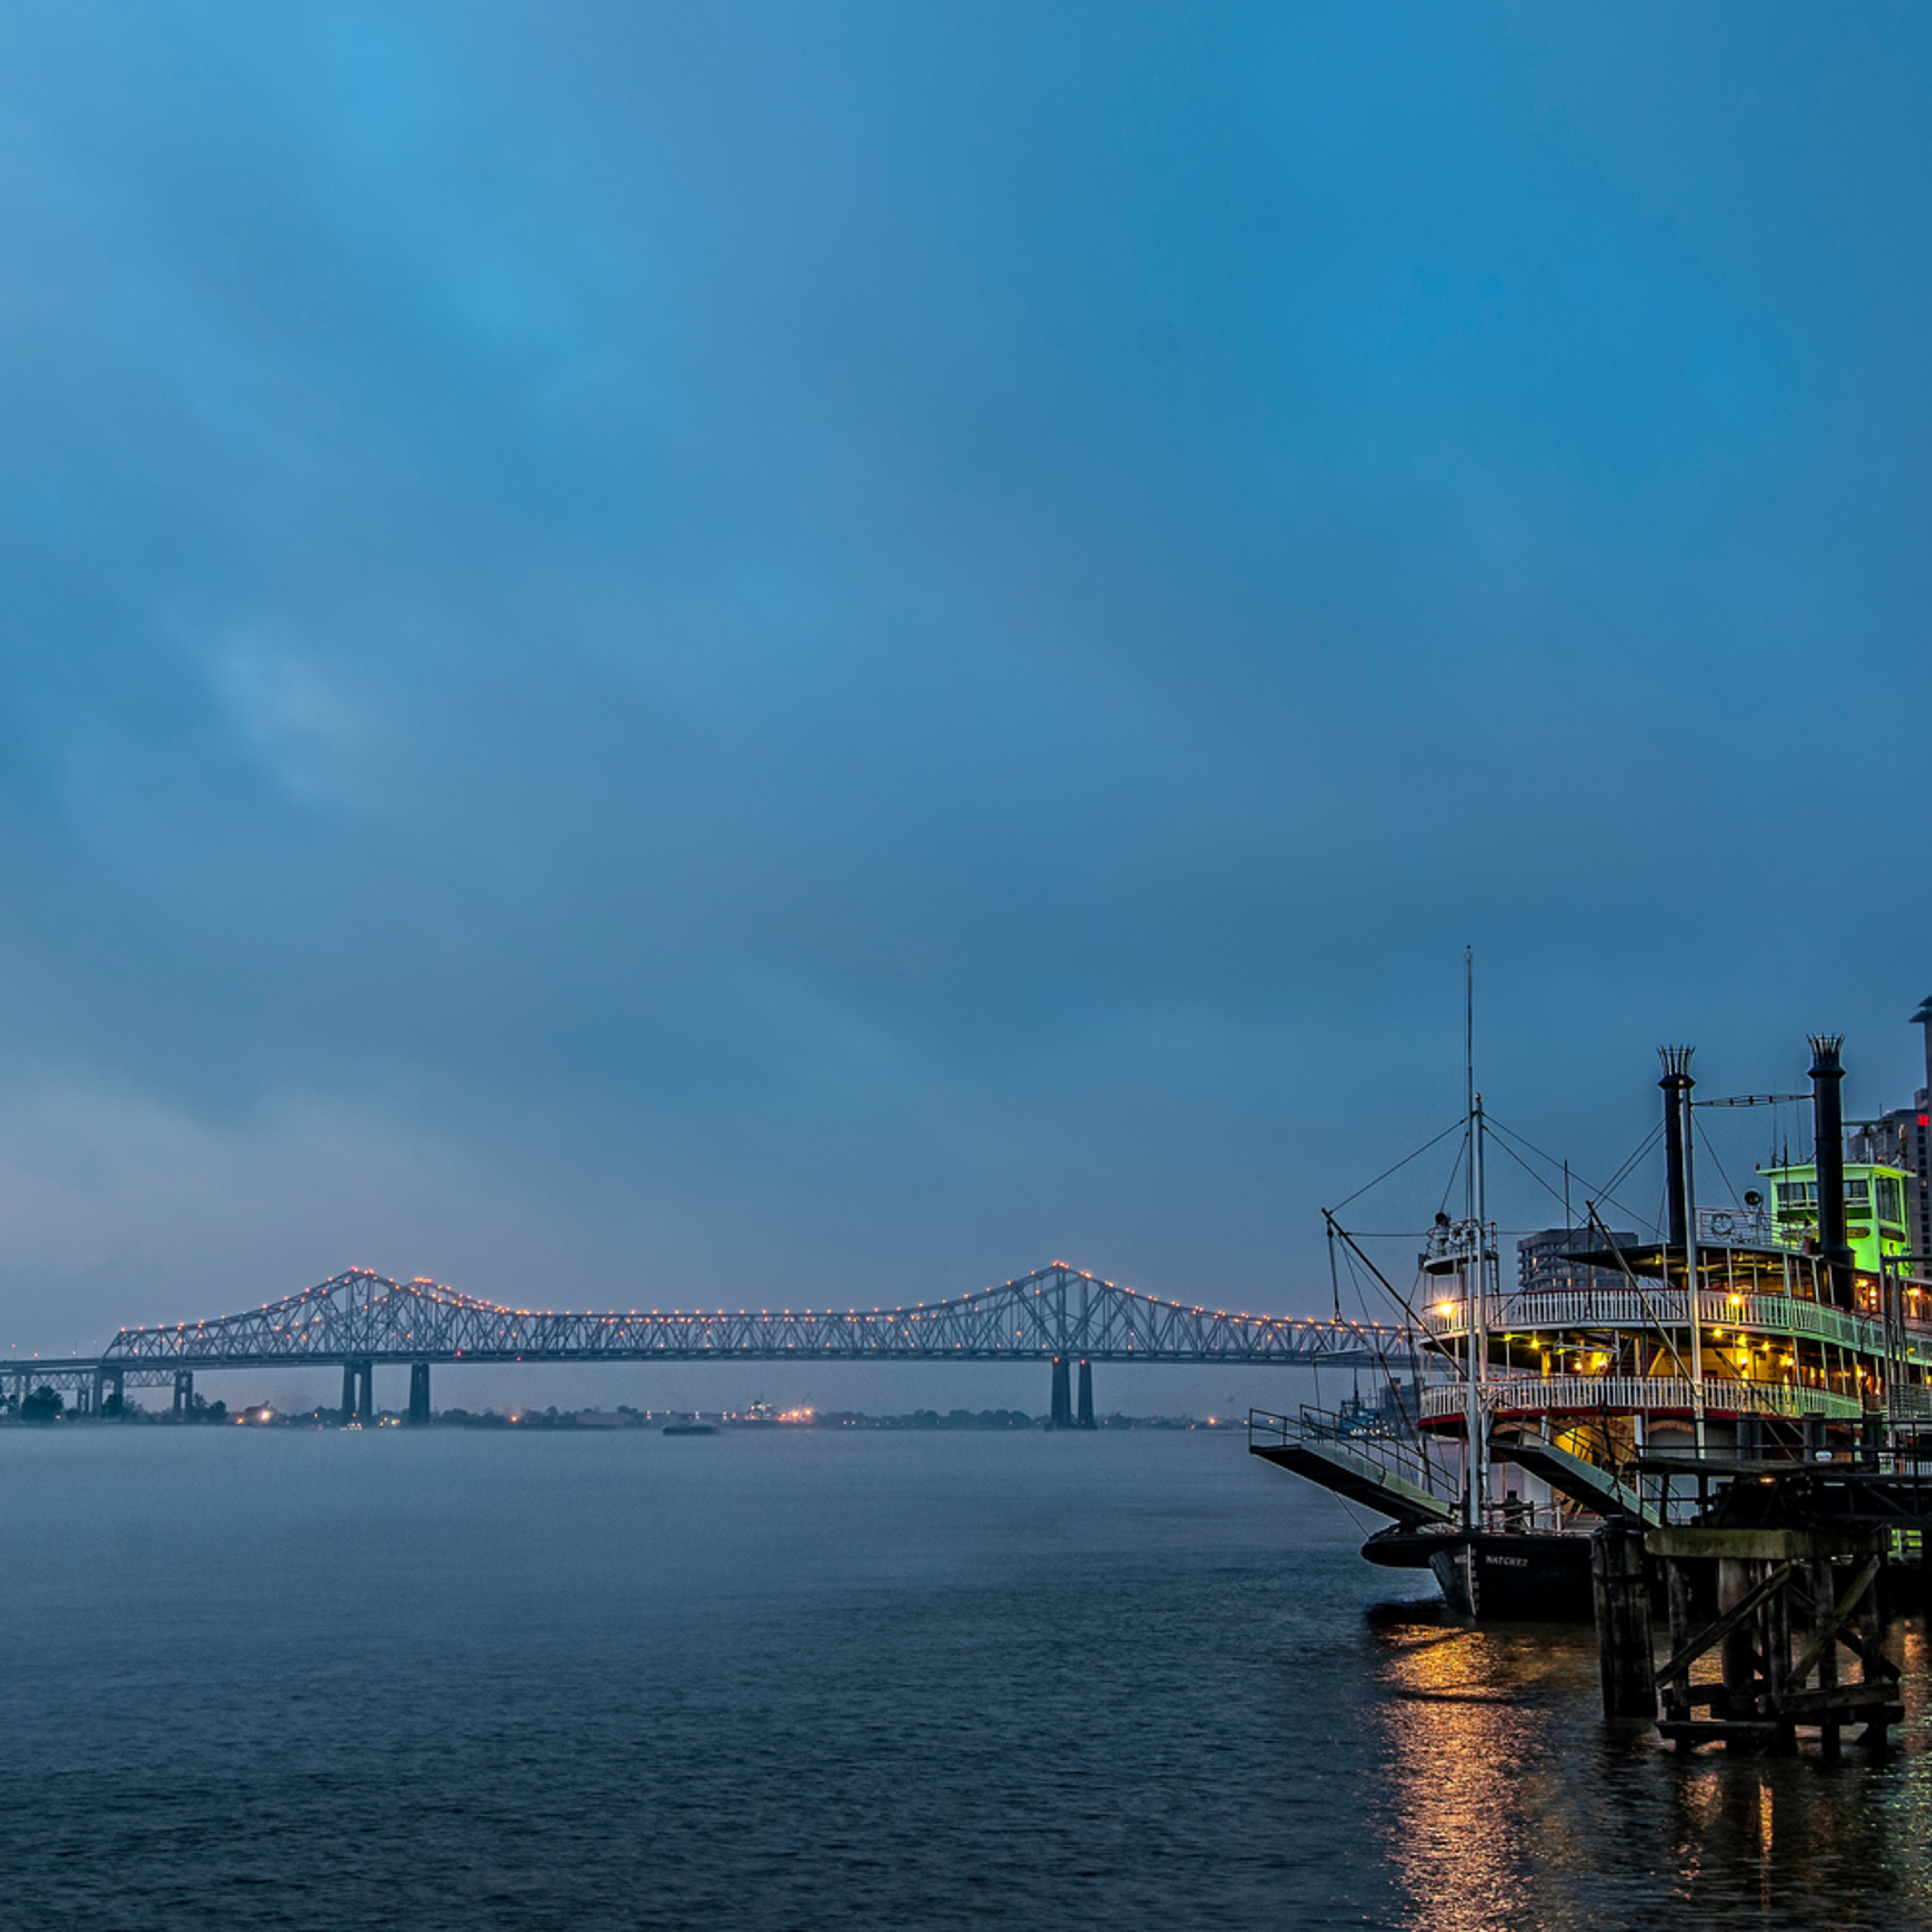 Andy crawford photography steamboat natchez 20171211 1 waok8n